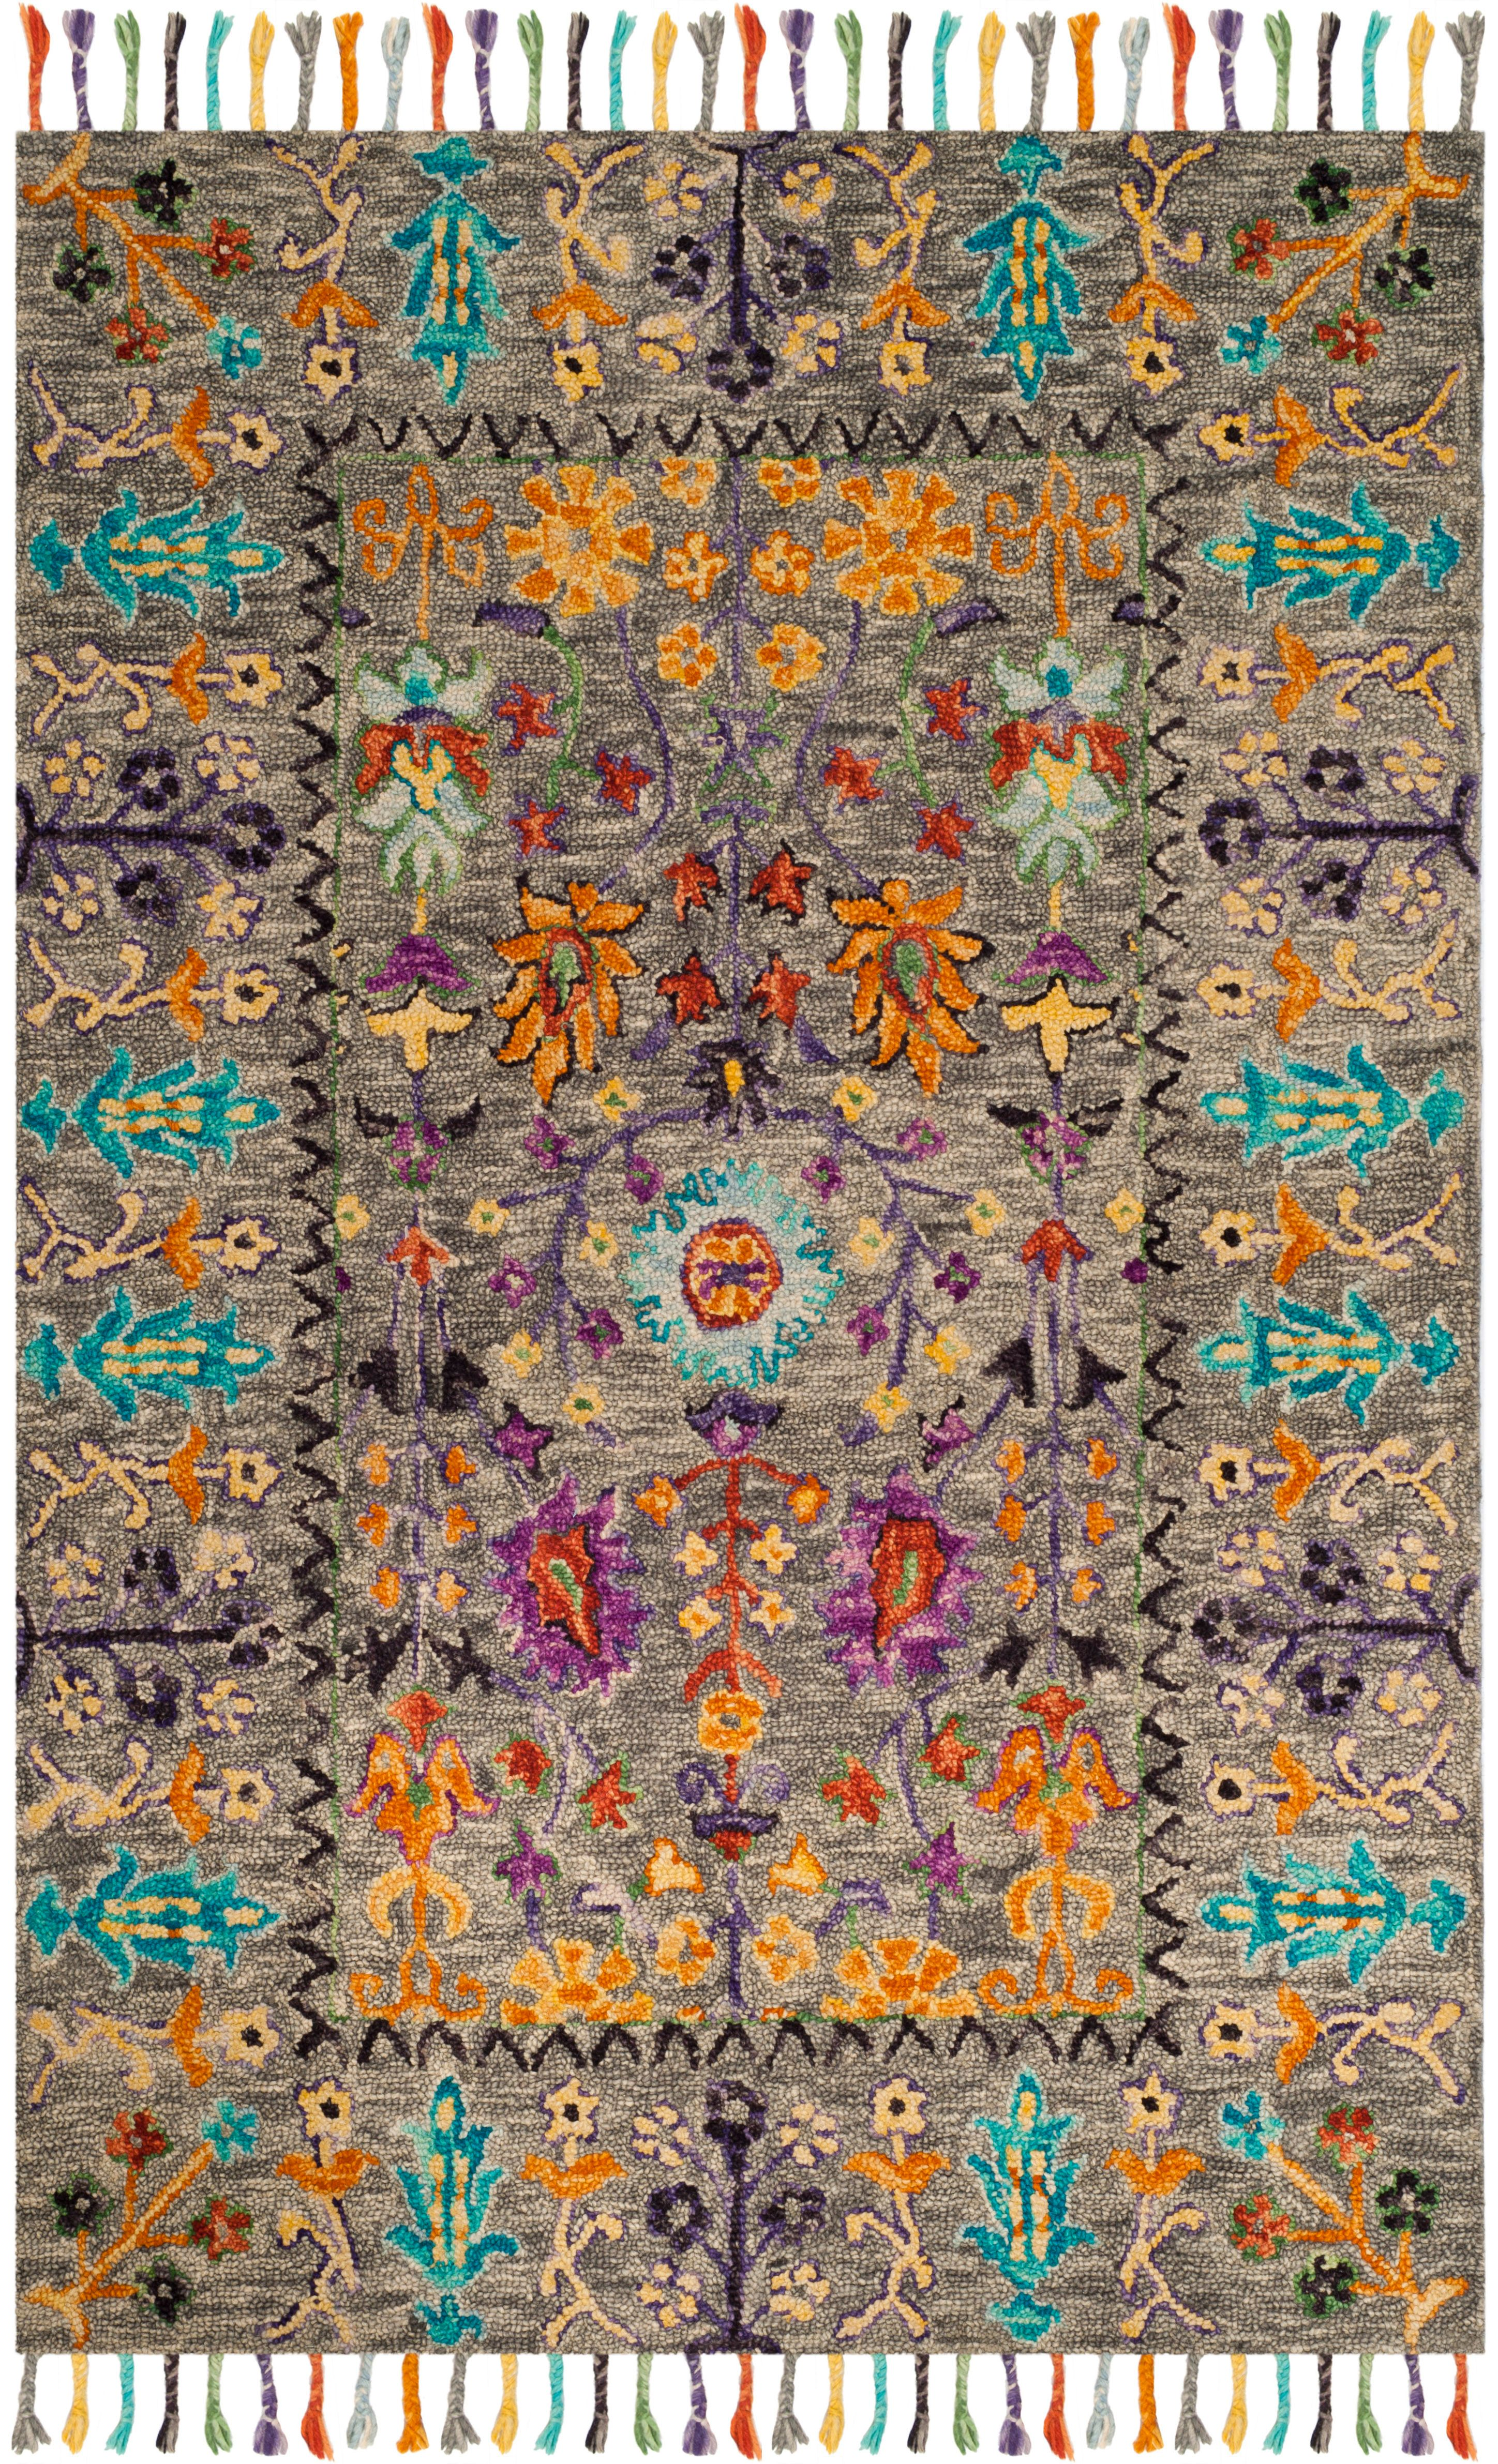 Safavieh Blossom Tarah Floral Area Rug or Runner by Safavieh